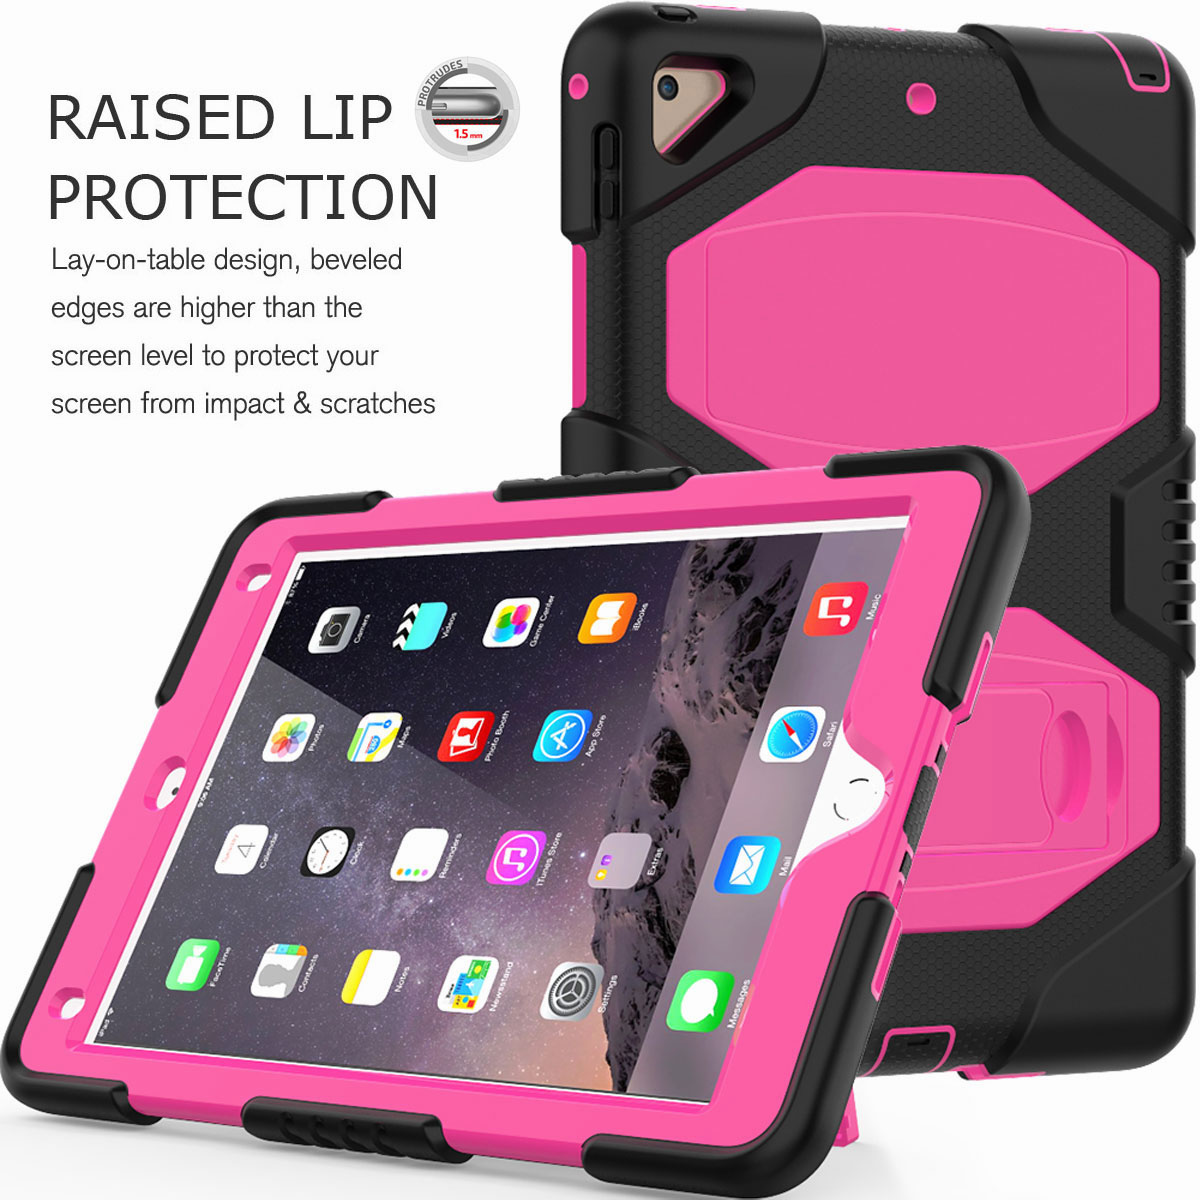 Hybrid-Rubber-Heavy-Duty-Shockproof-Case-Cover-For-iPad-9-7-6th-Generation-2018 thumbnail 33